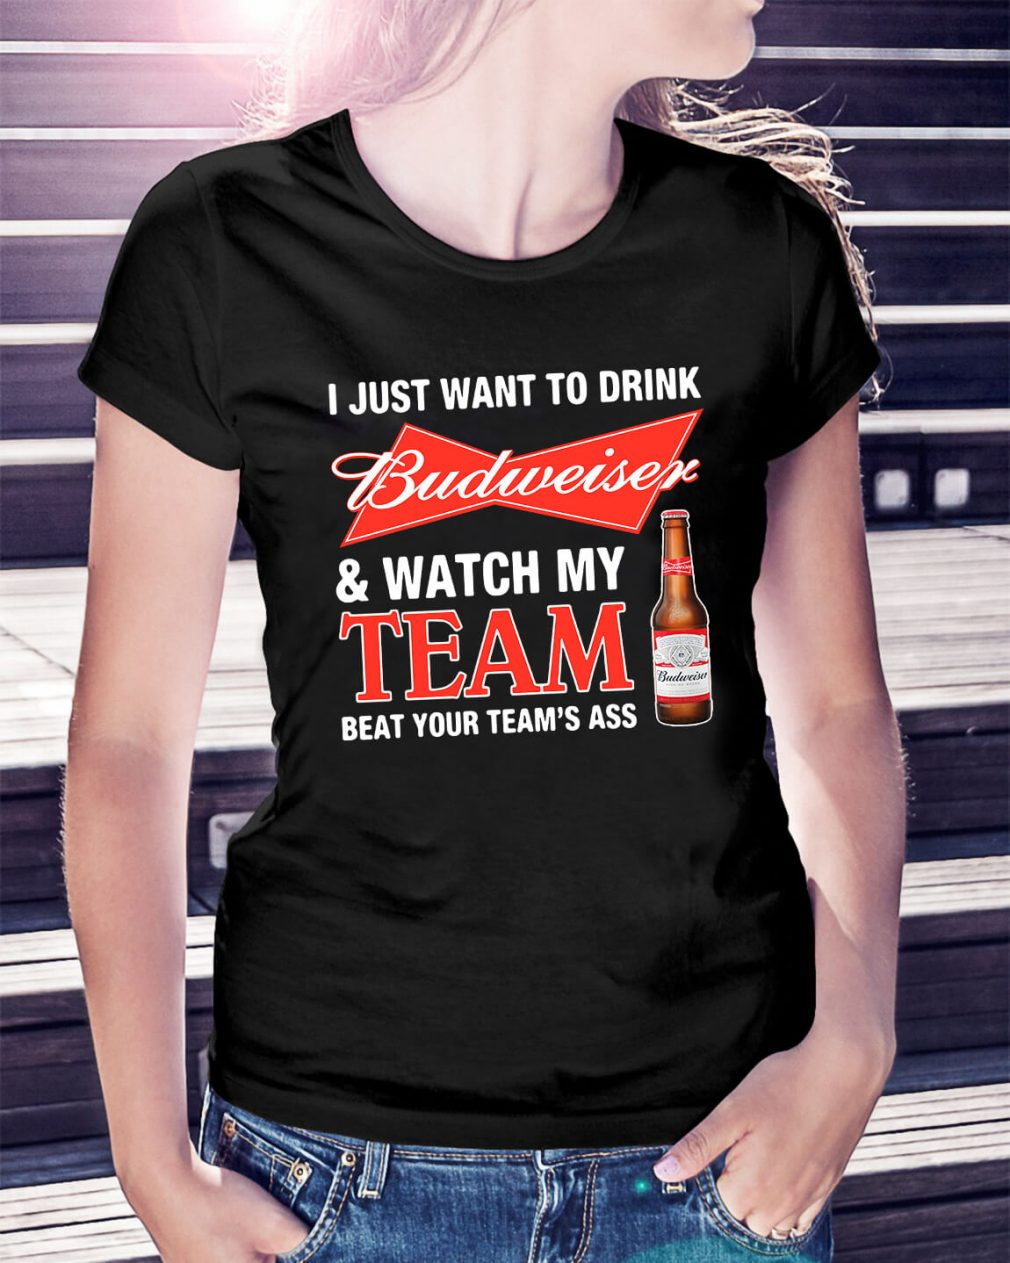 Budweiser and watch my team beat your team's ass Ladies Tee